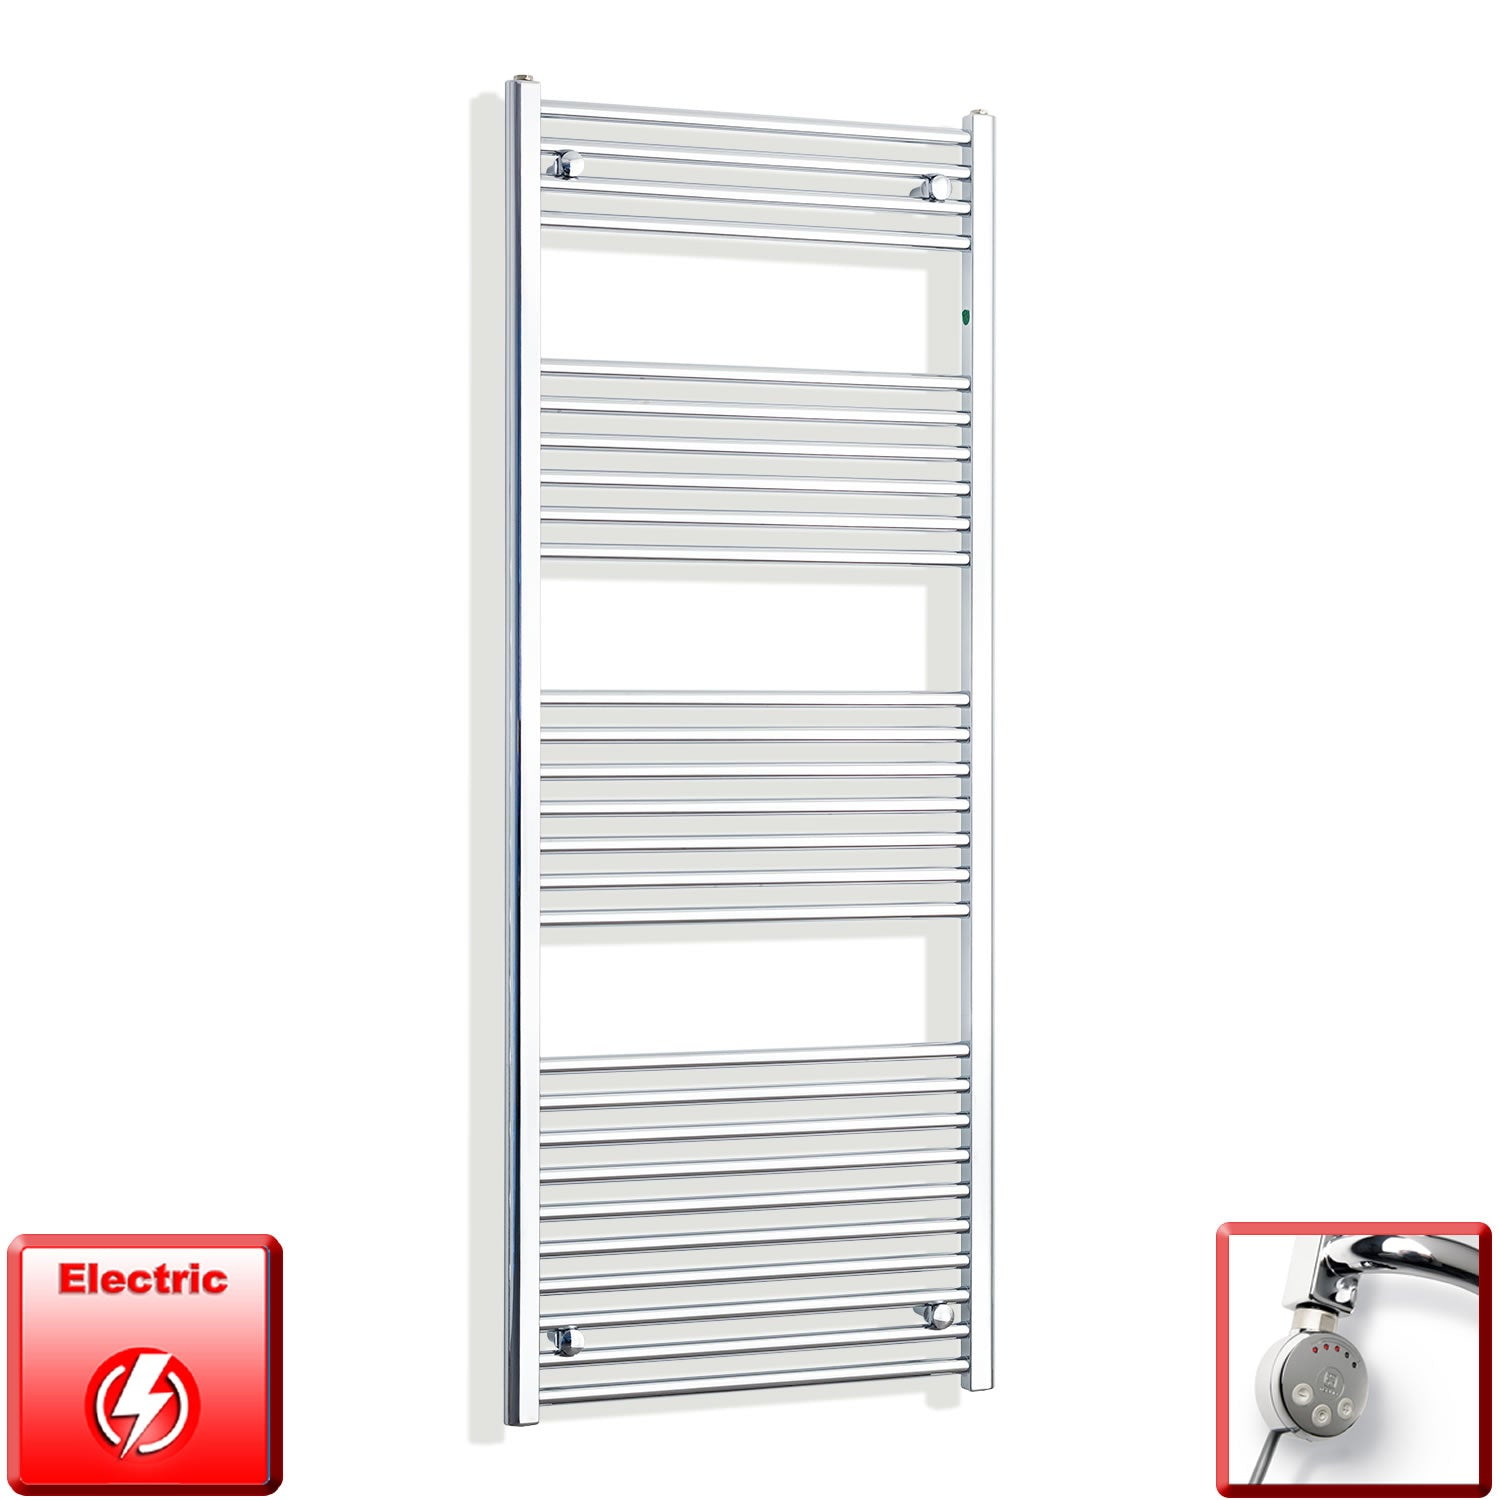 650mm Wide 1600mm High Pre-Filled Chrome Electric Towel Rail Radiator With Thermostatic MEG Element